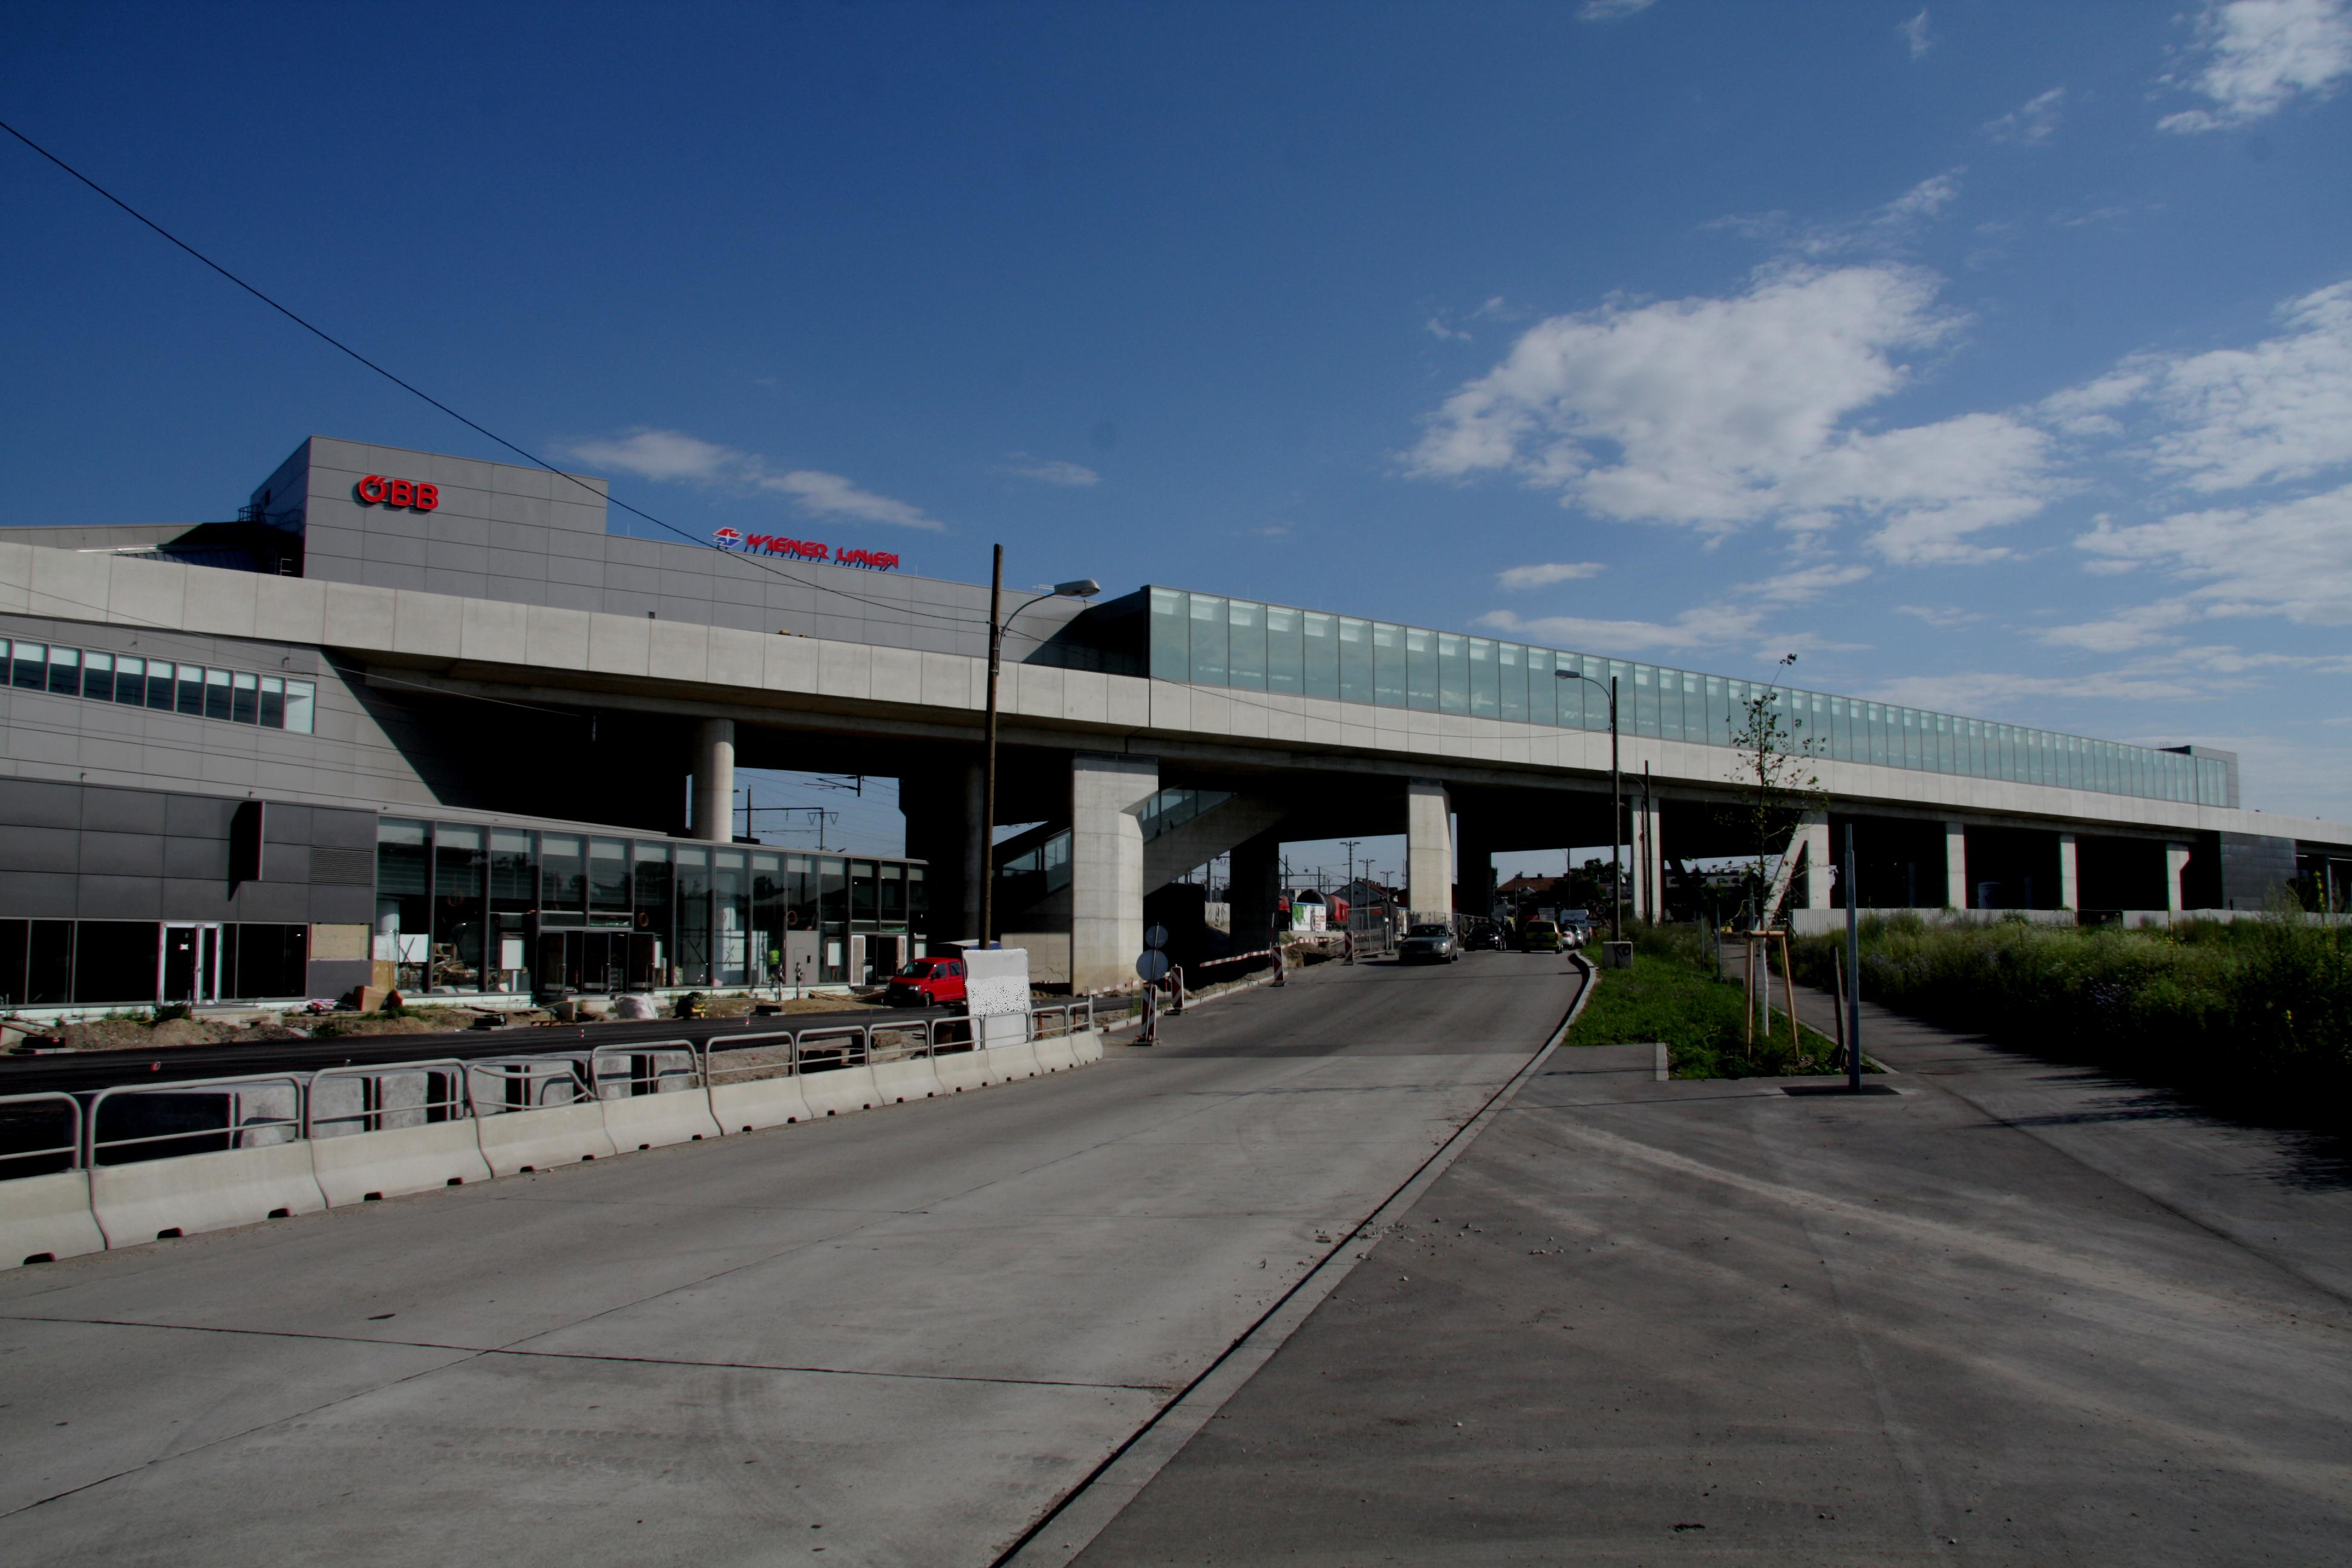 Wiener U-Bahnlinie 2, Baulos 8 - Stadlau - Road and bridge construction